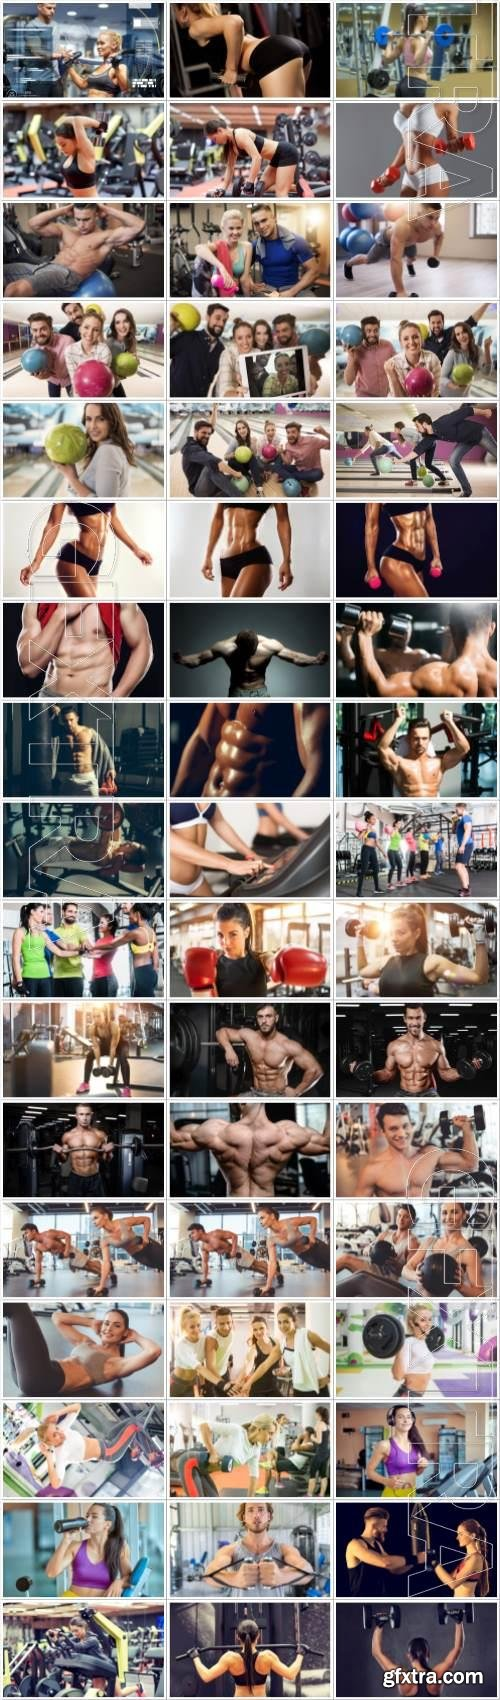 Sports large collection of stock photos